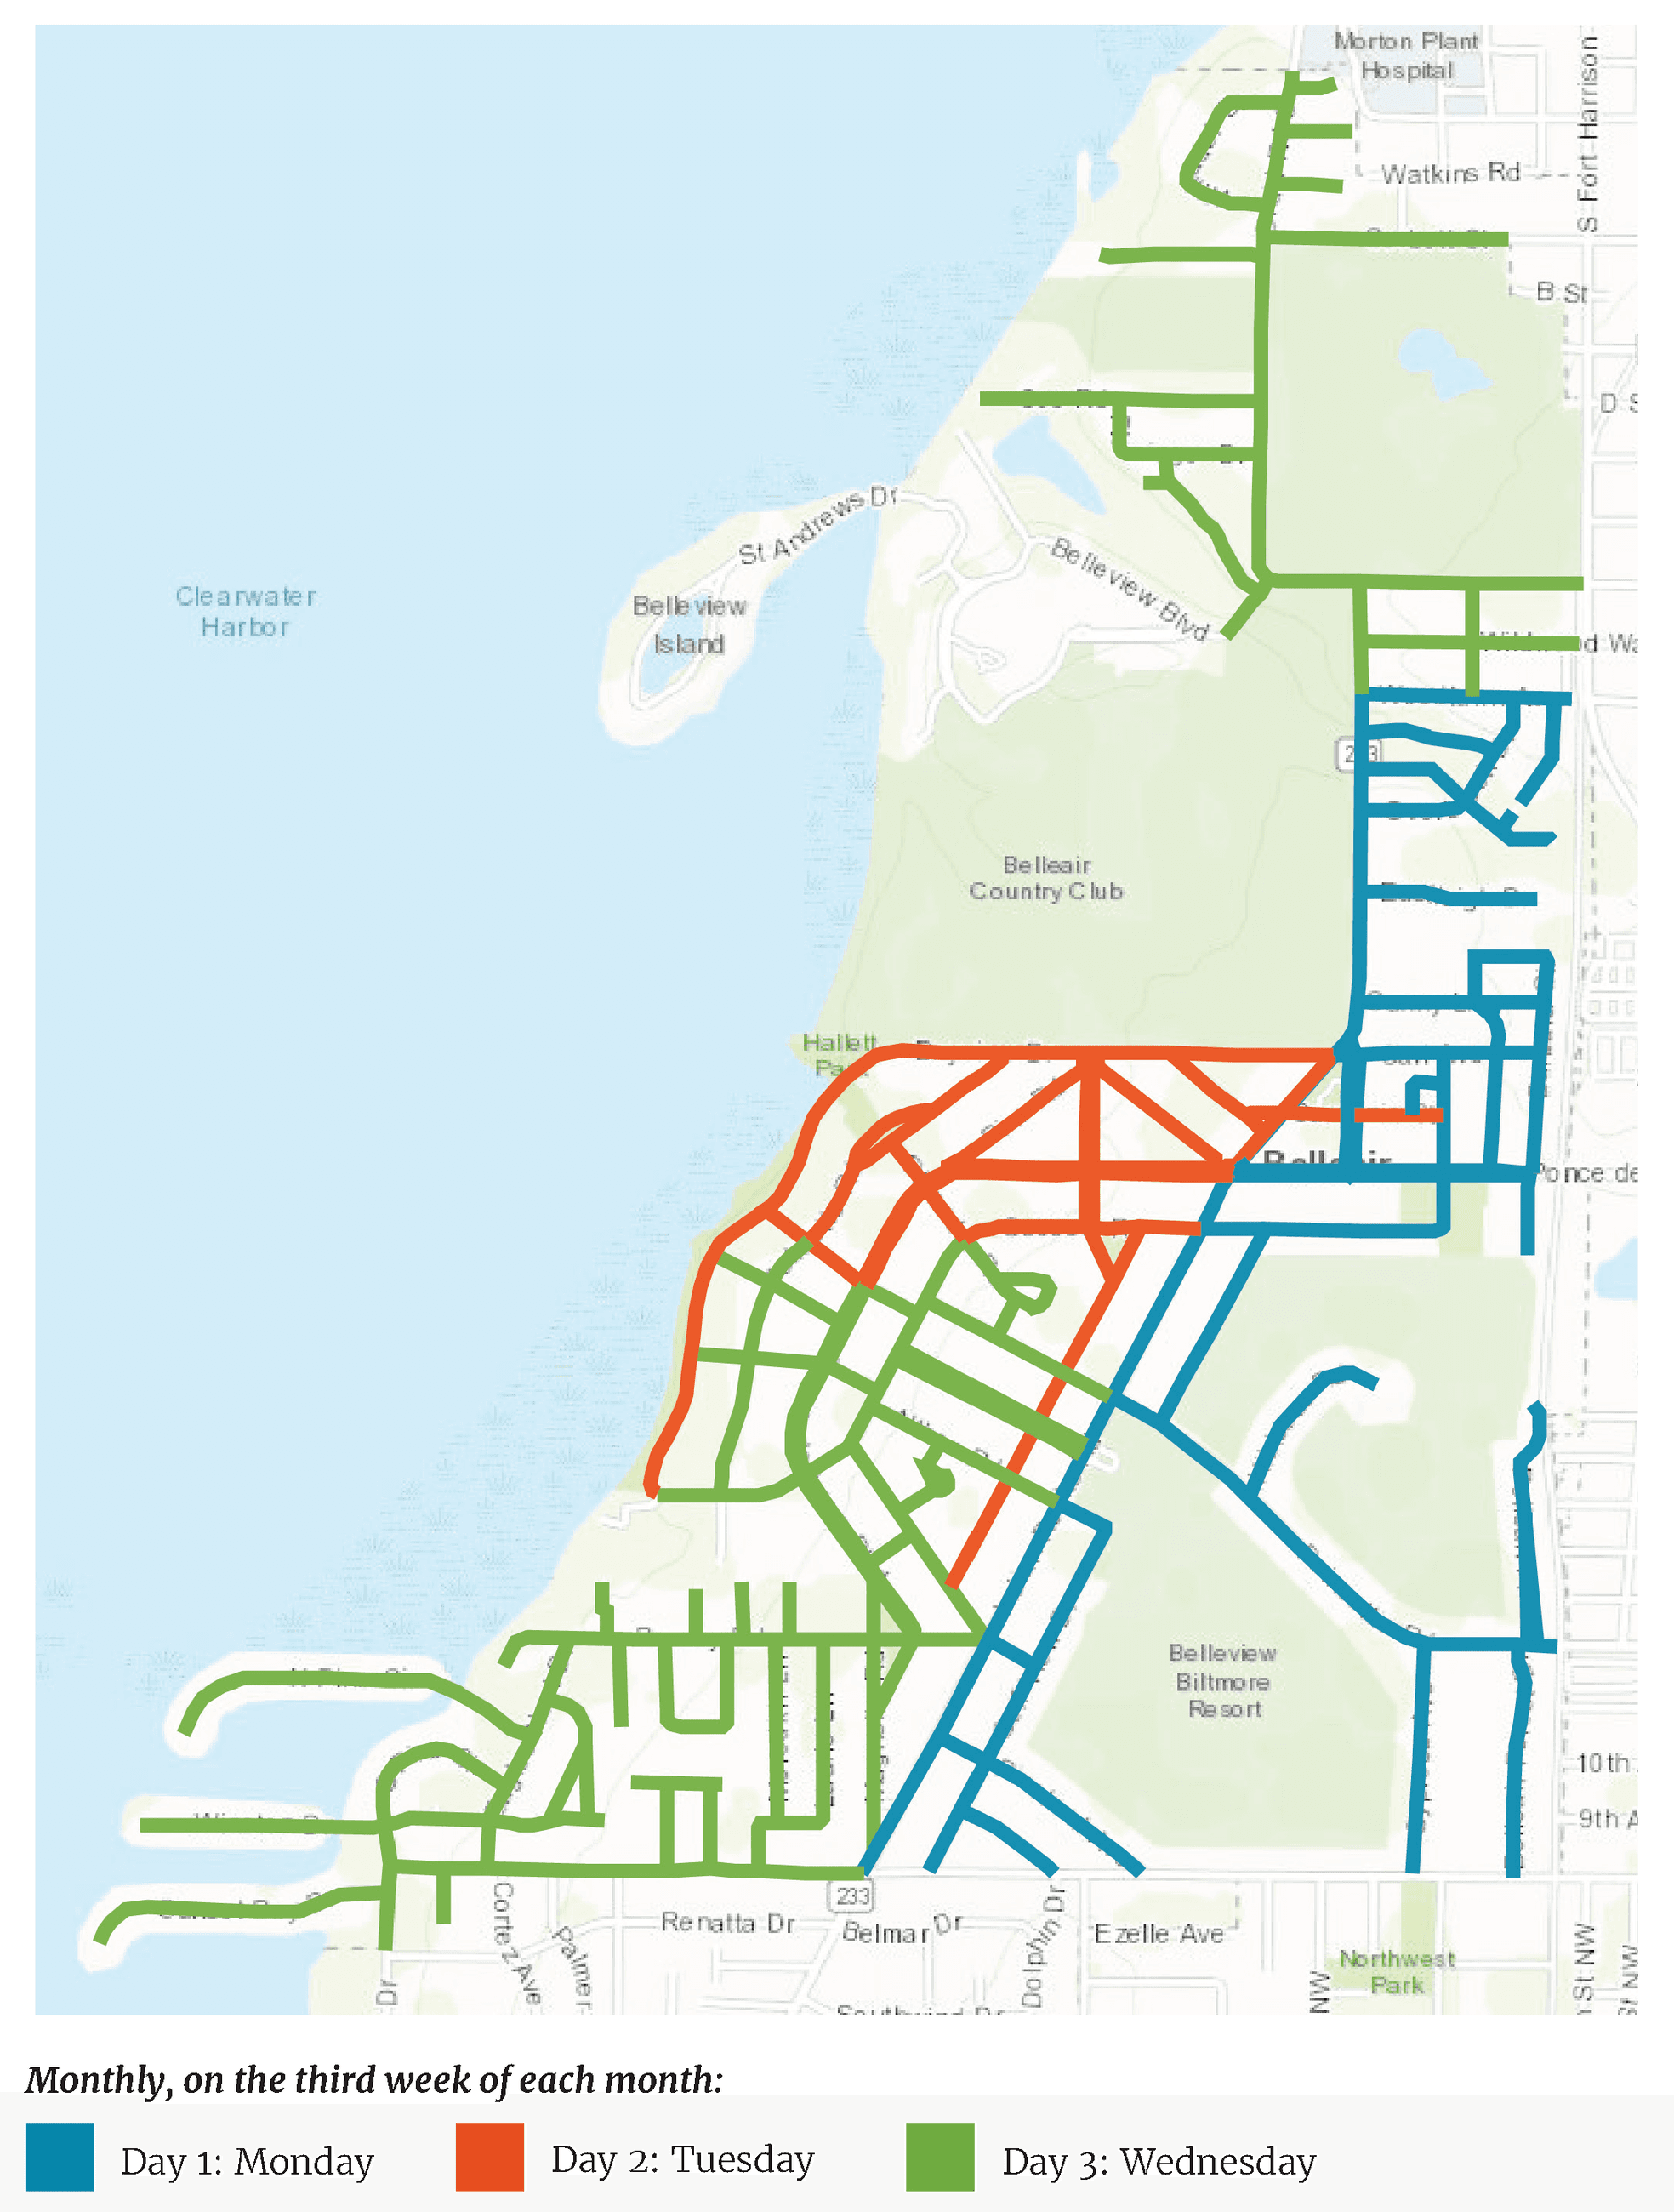 A map of Belleair that uses three colors to outline monthly street sweeping zones.